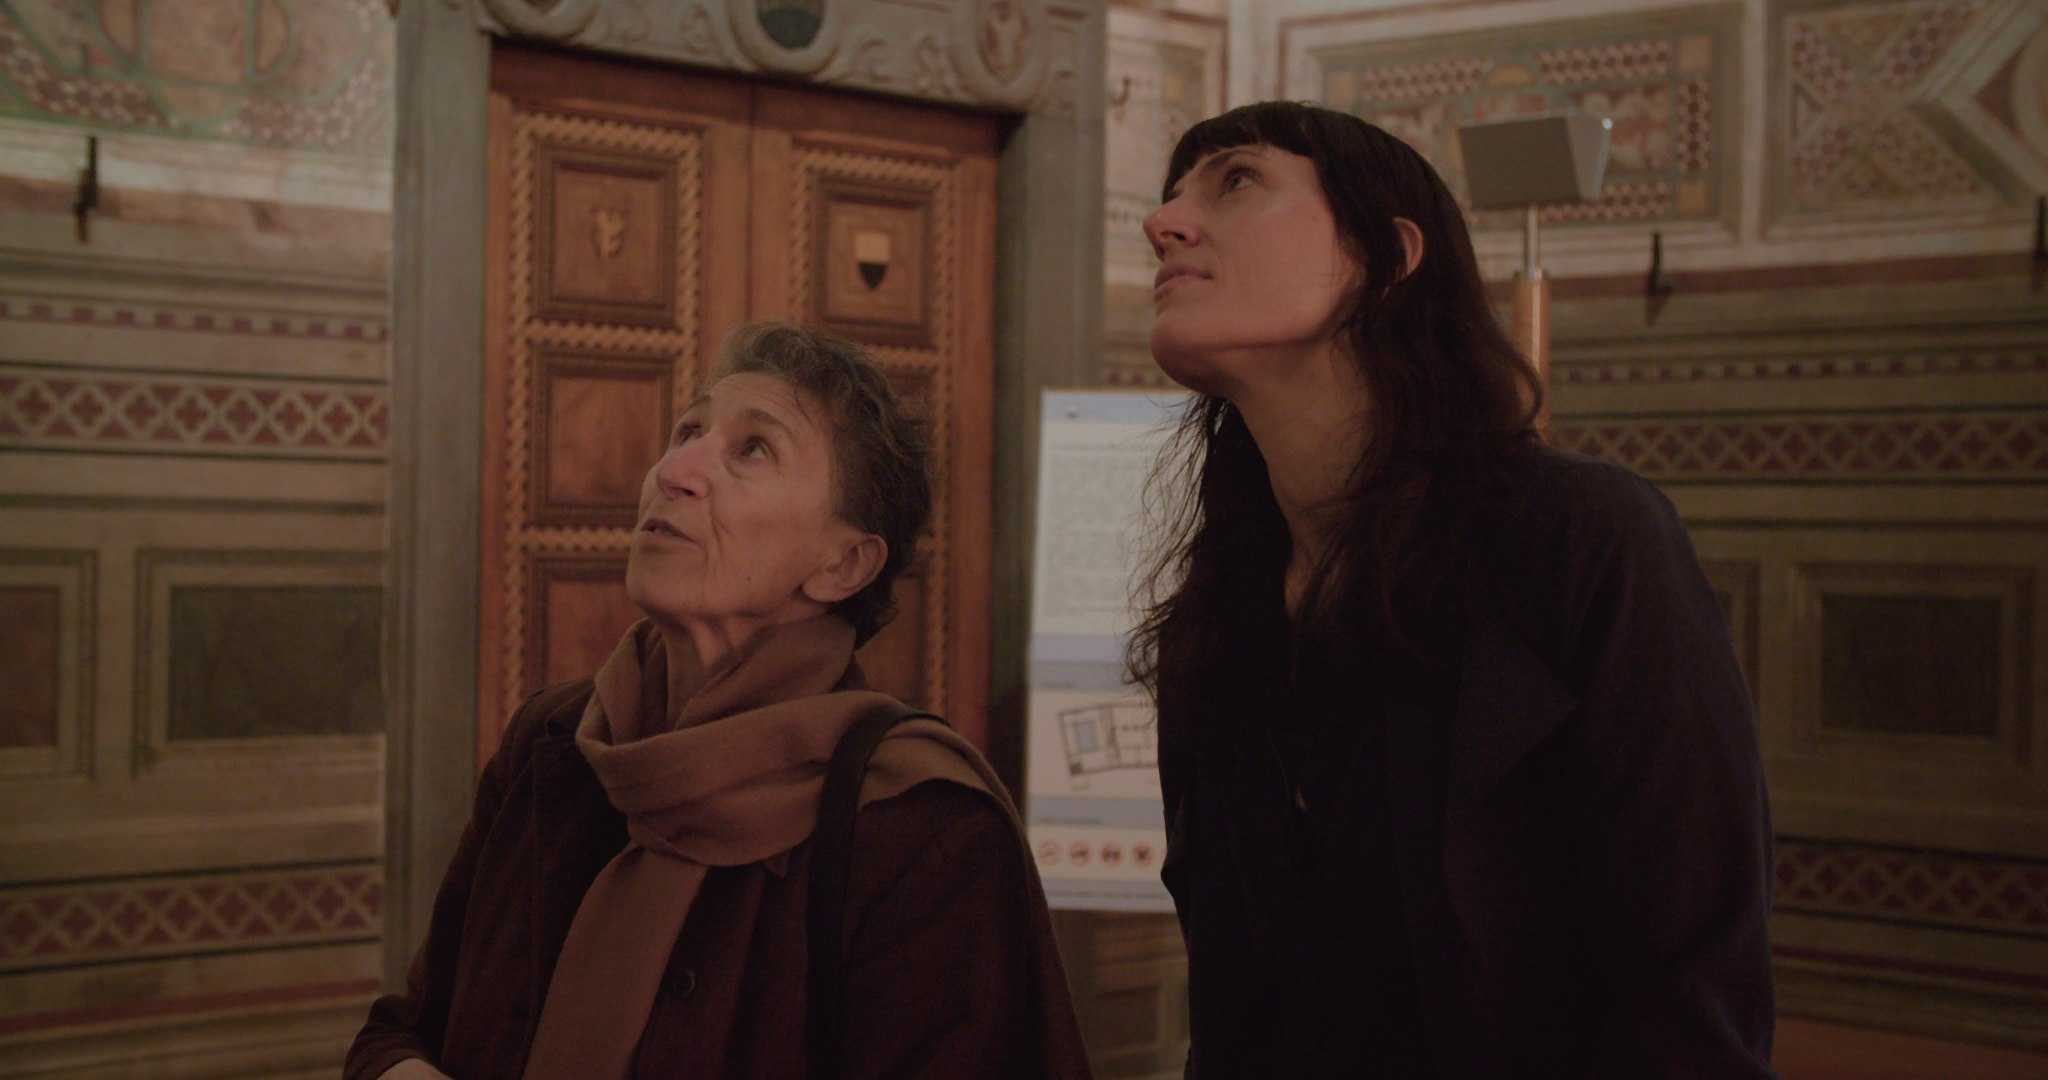 Silvia Federici & director Astra Taylor in What Is Democracy?